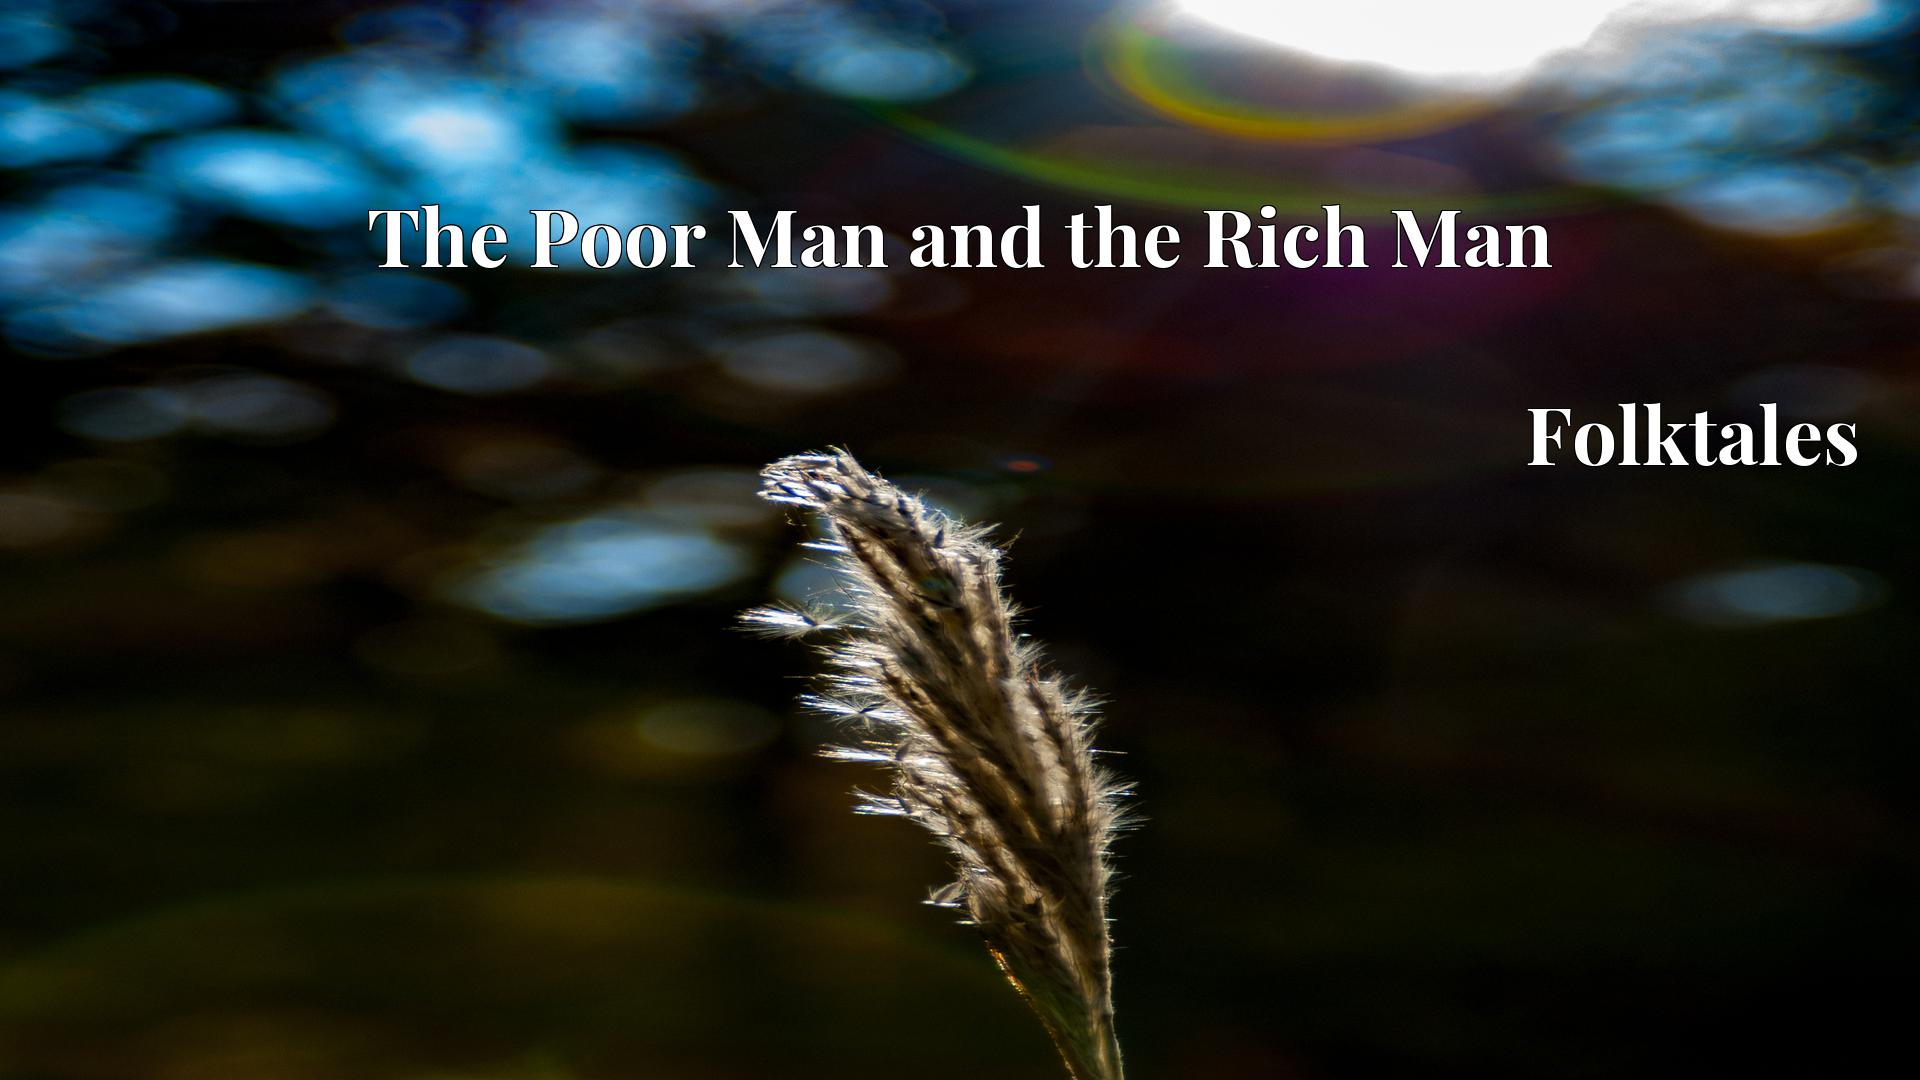 The Poor Man and the Rich Man - Folktales